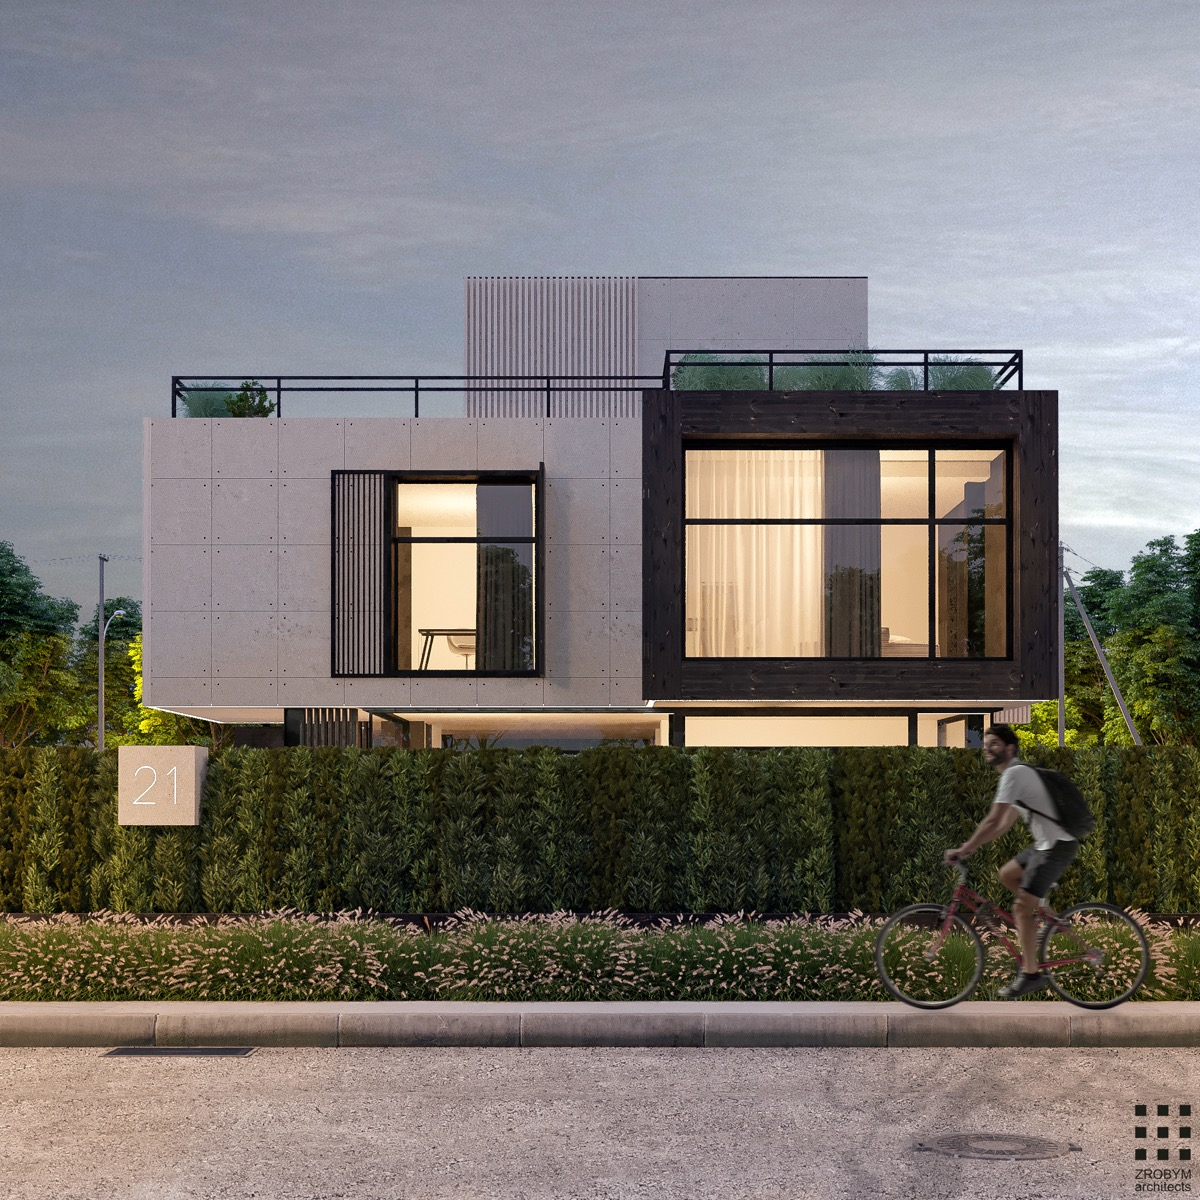 50 stunning modern home exterior designs that have awesome facades. Black Bedroom Furniture Sets. Home Design Ideas